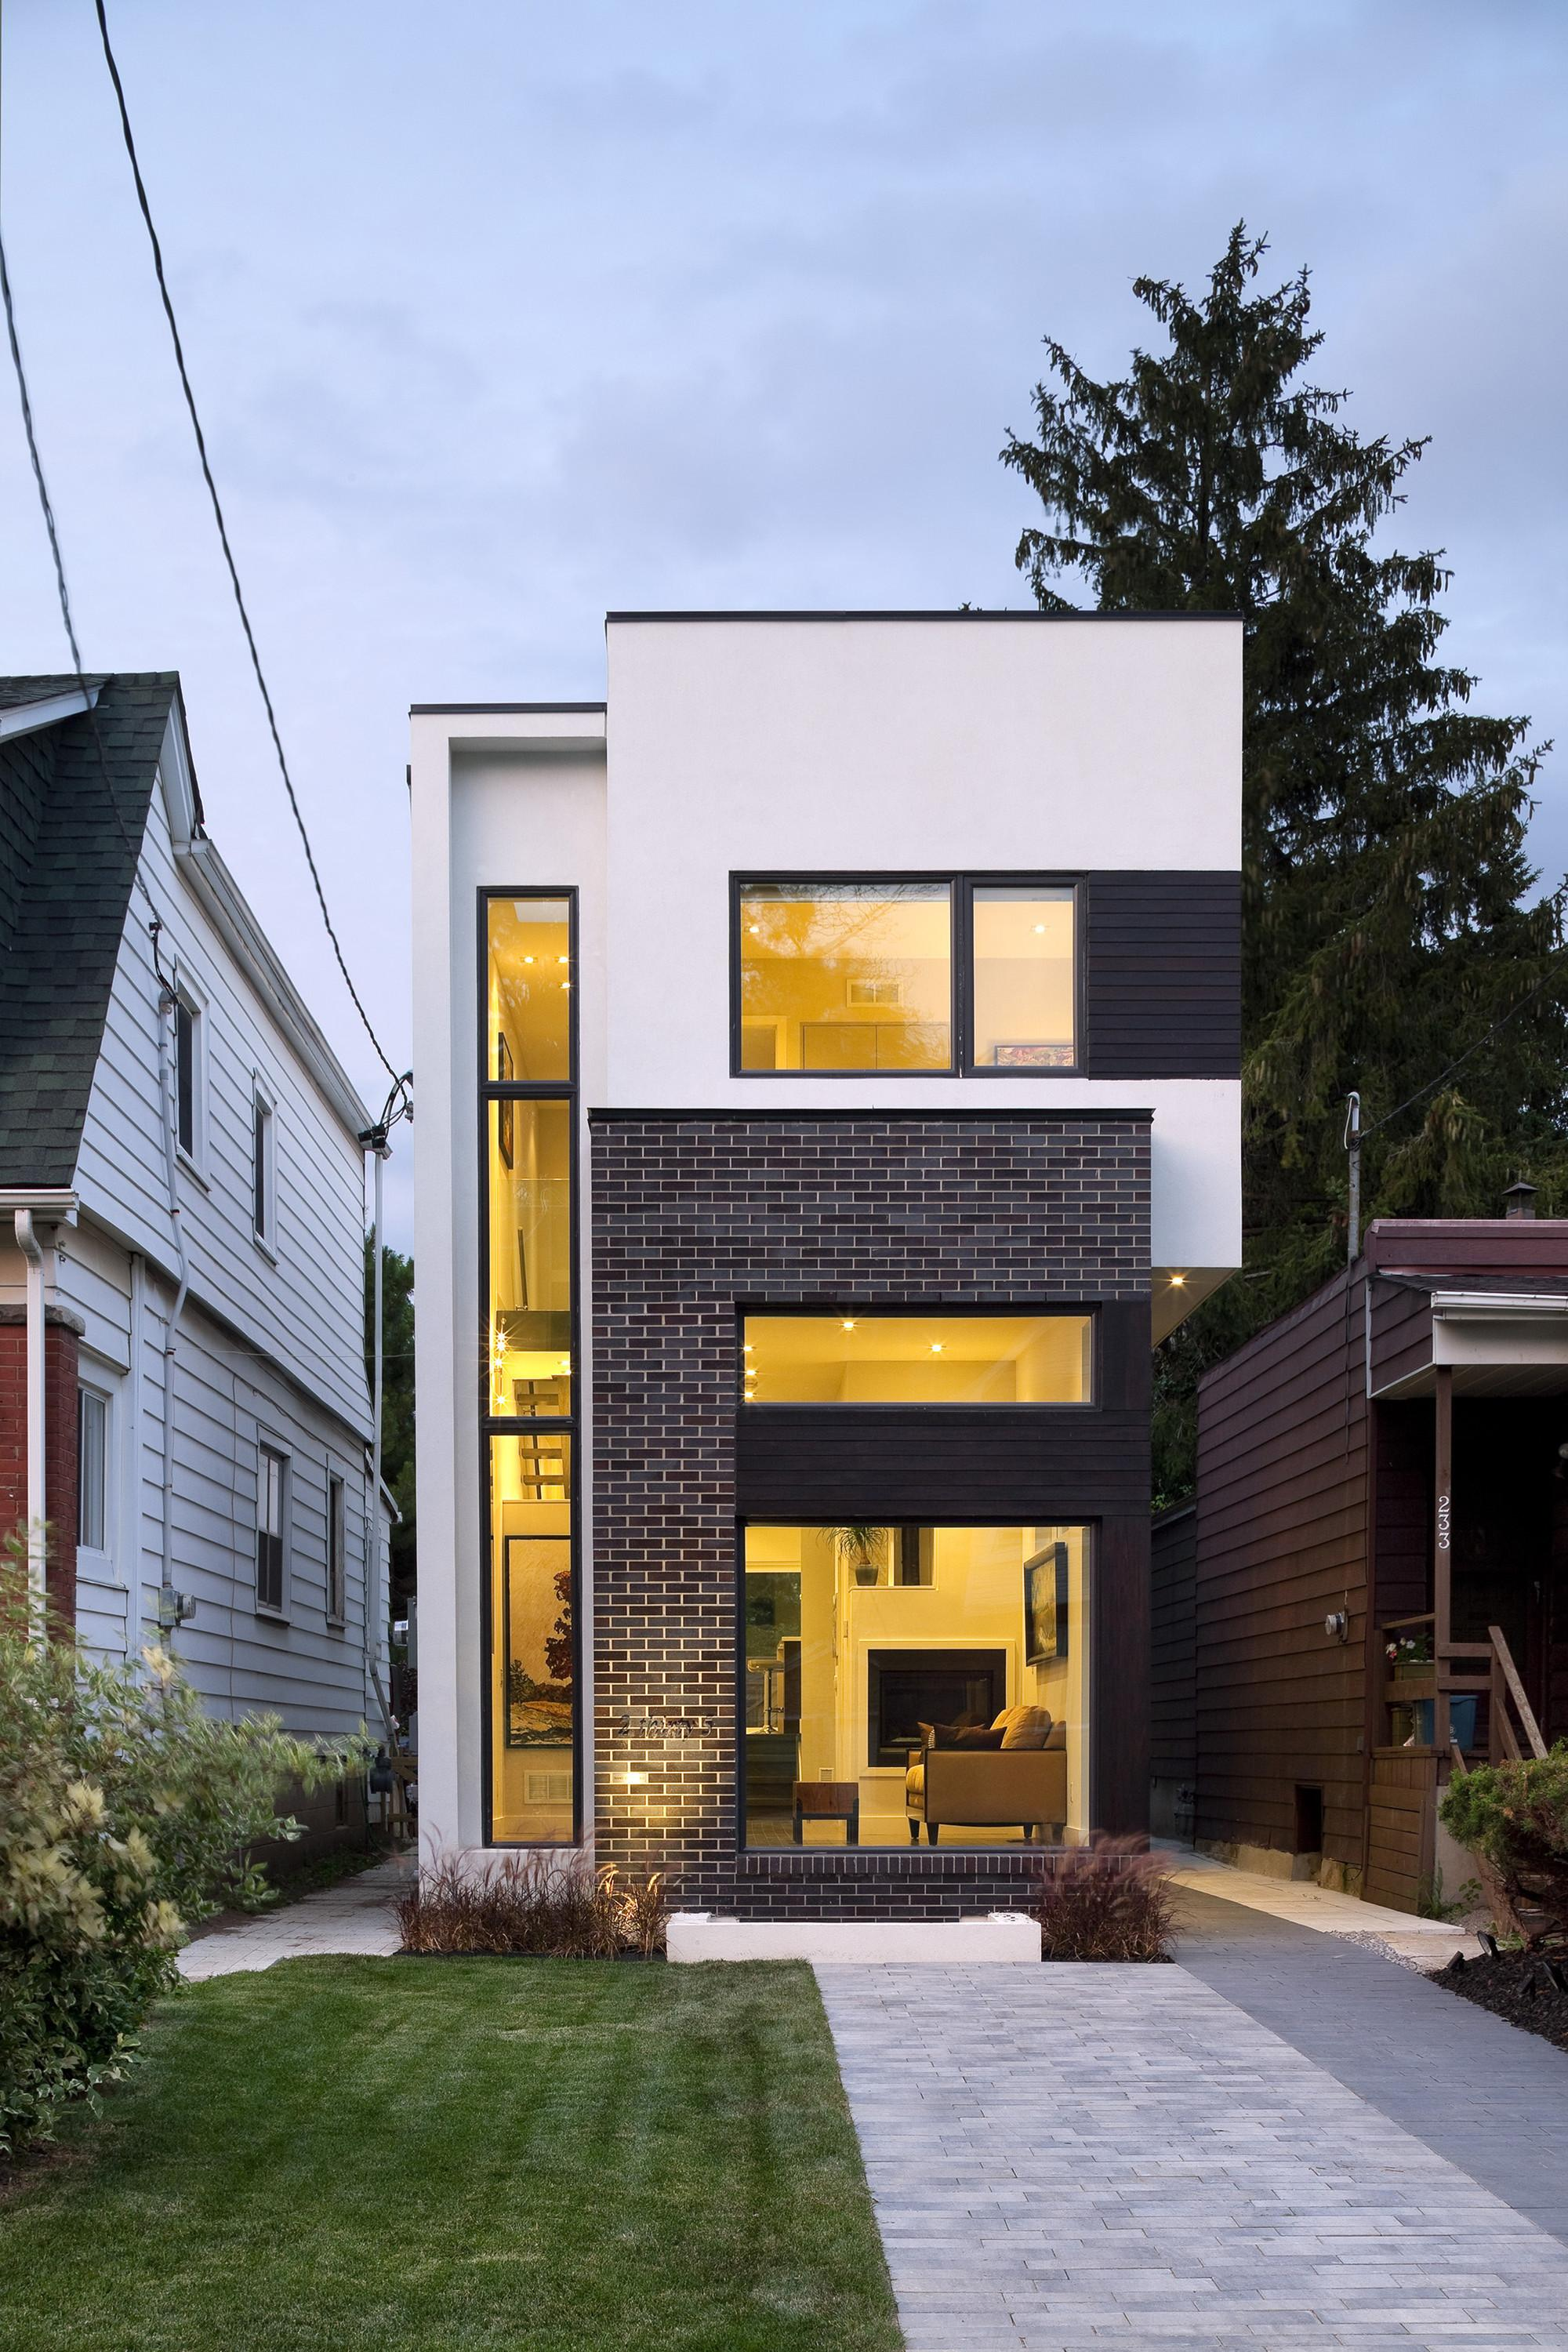 Linear House Green Dot Architects Archdaily